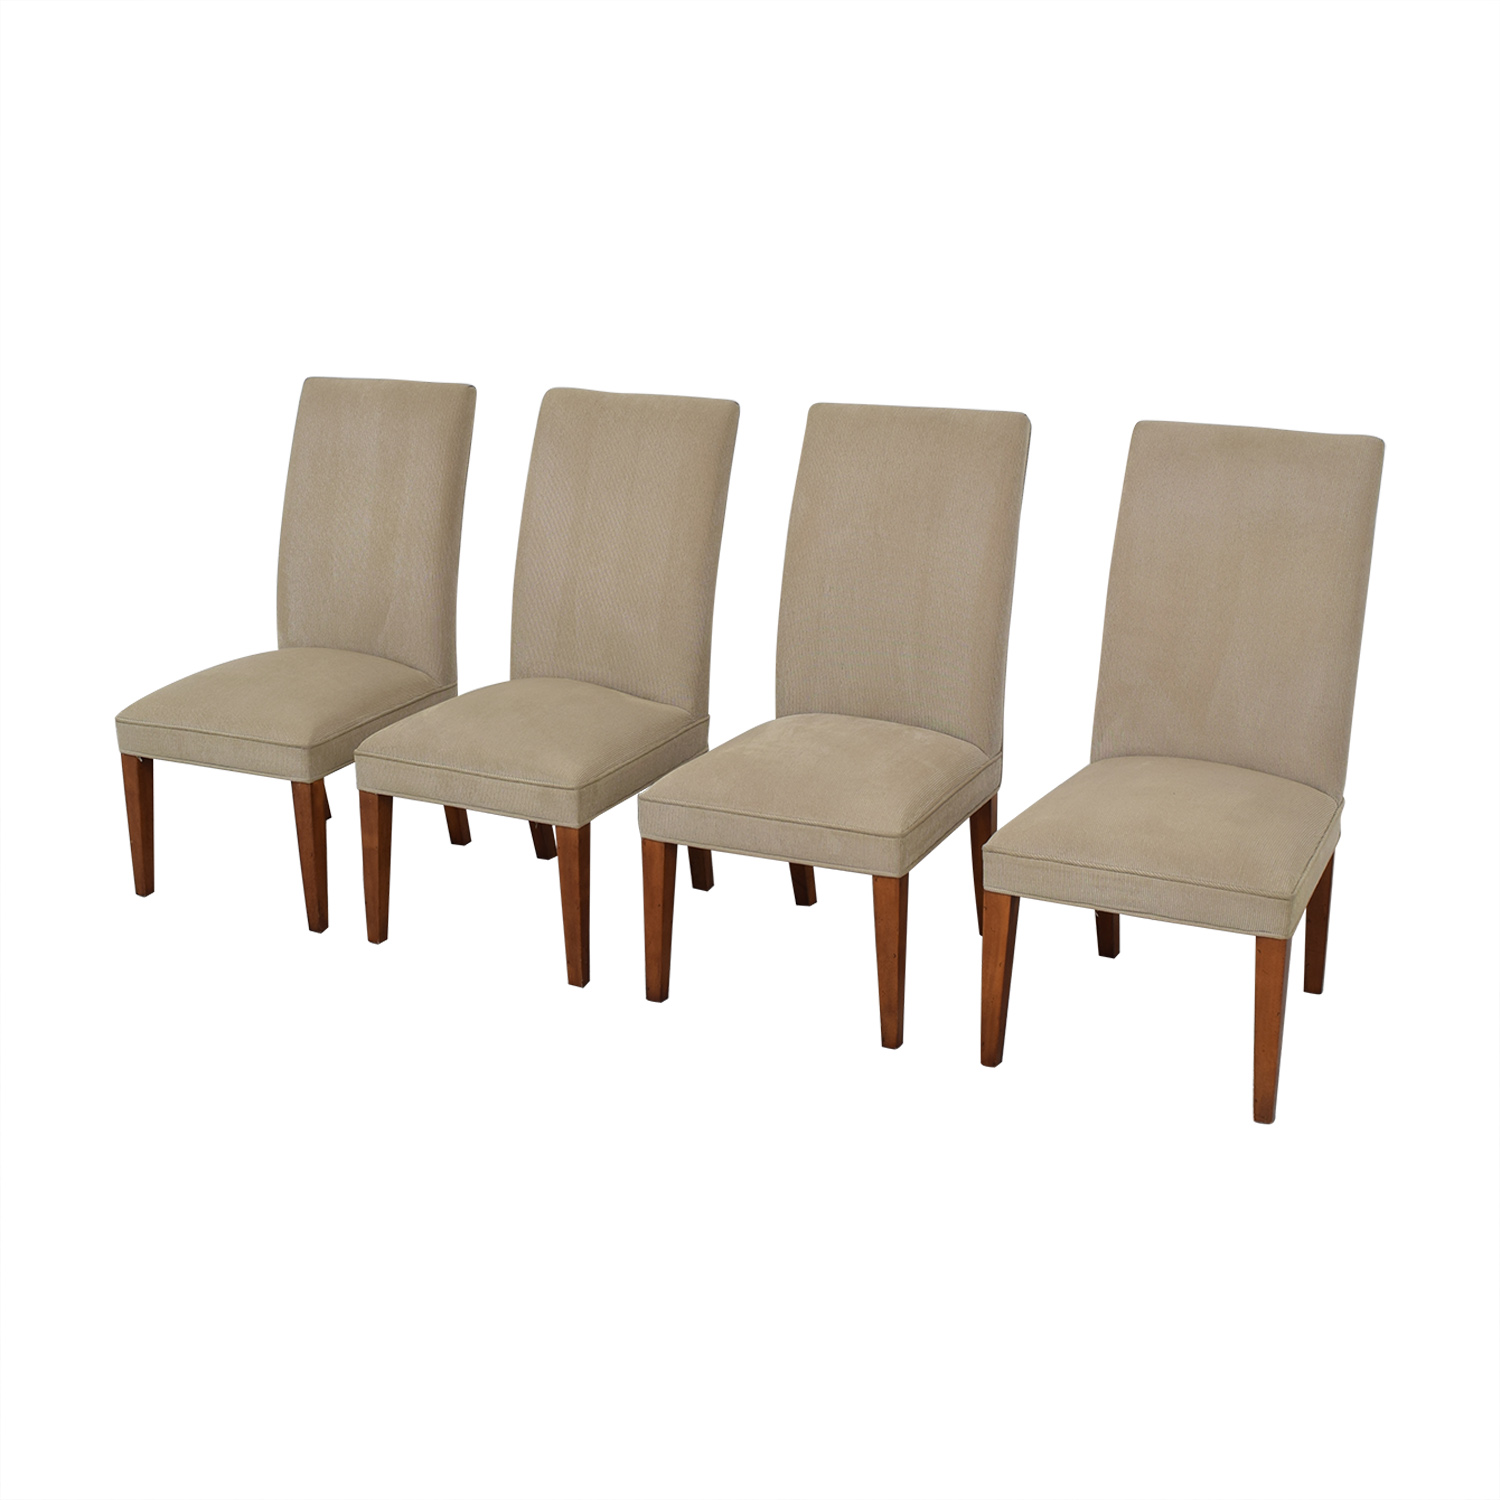 shop Restoration Hardware Restoration Hardware Hudson Parsons Chairs online